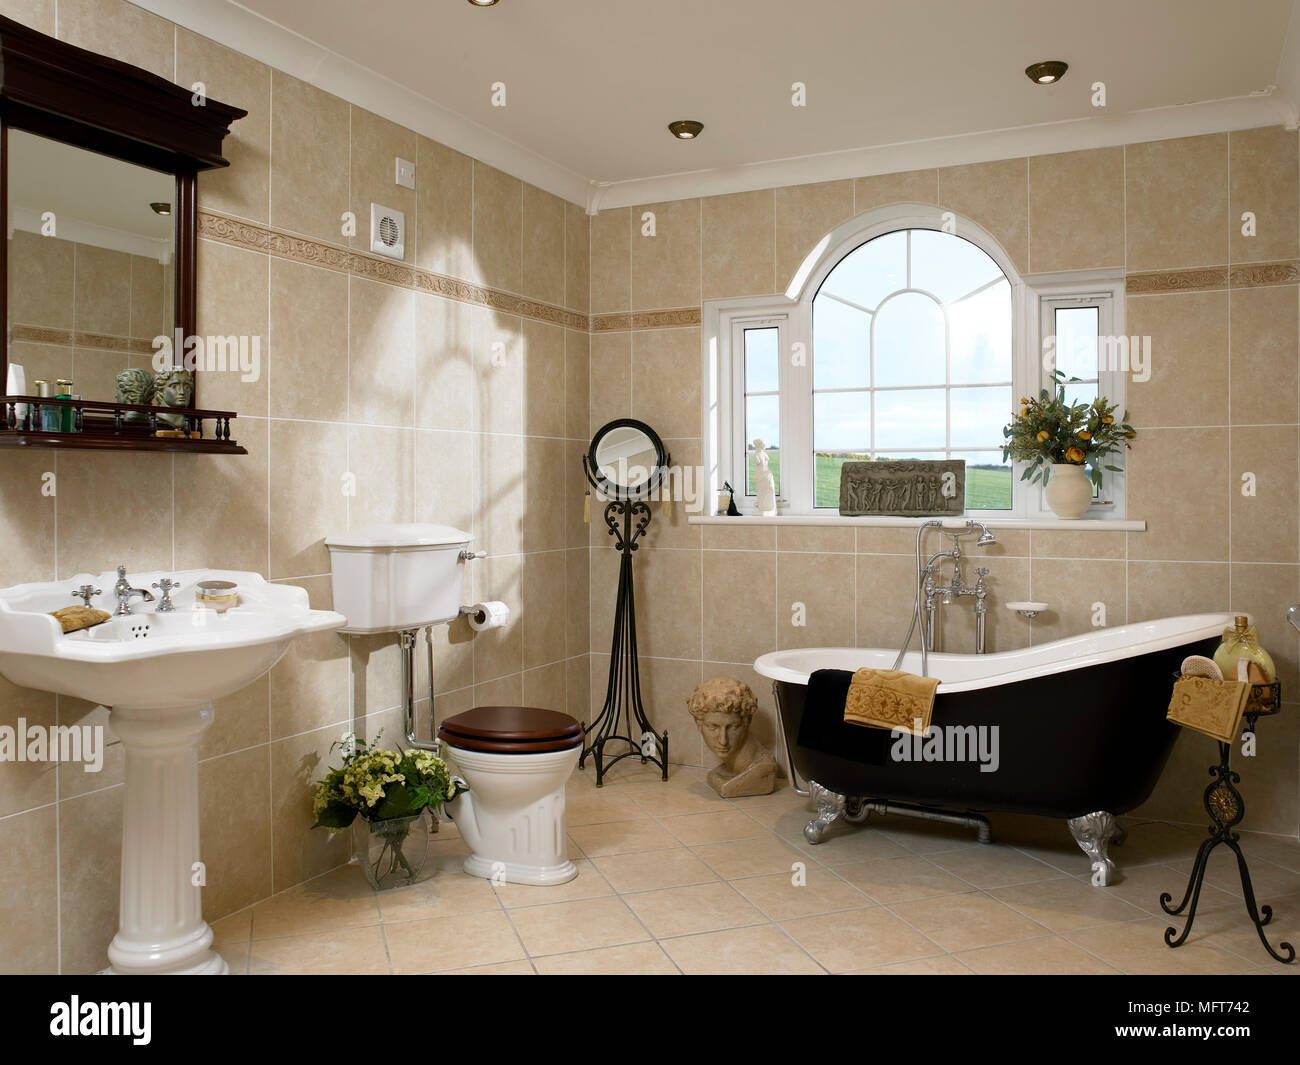 A traditional style bathroom with tiled walls, a freestanding roll ...